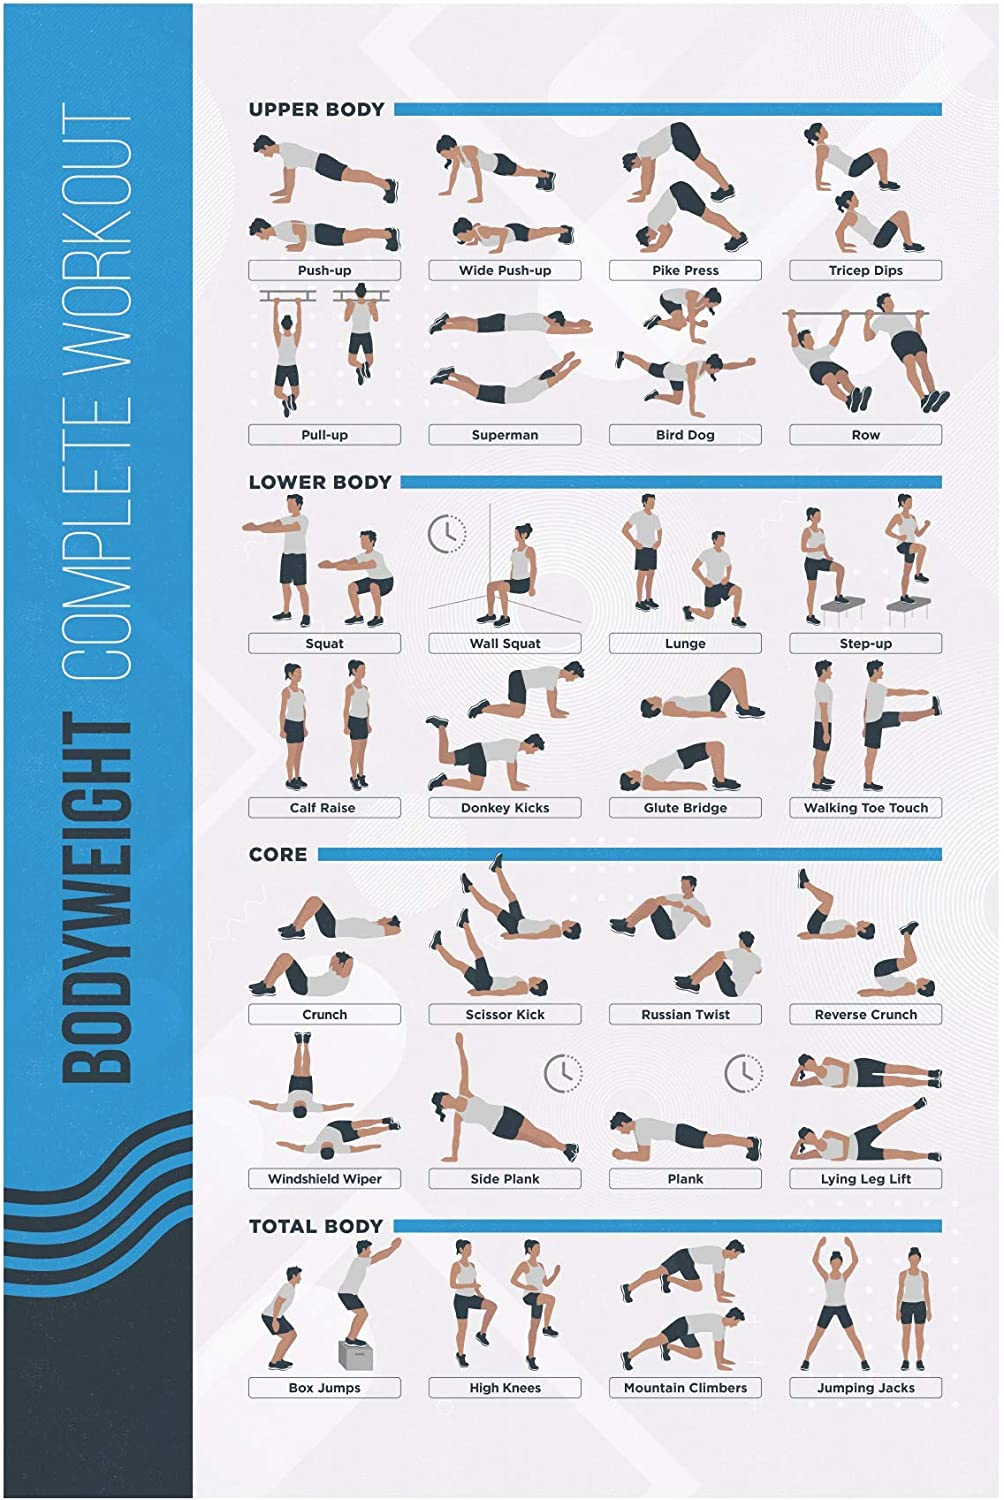 FitMate Bodyweight Workout Exercise Poster - Workout Routine with Free Weights, Home Gym Decor, Room Guide